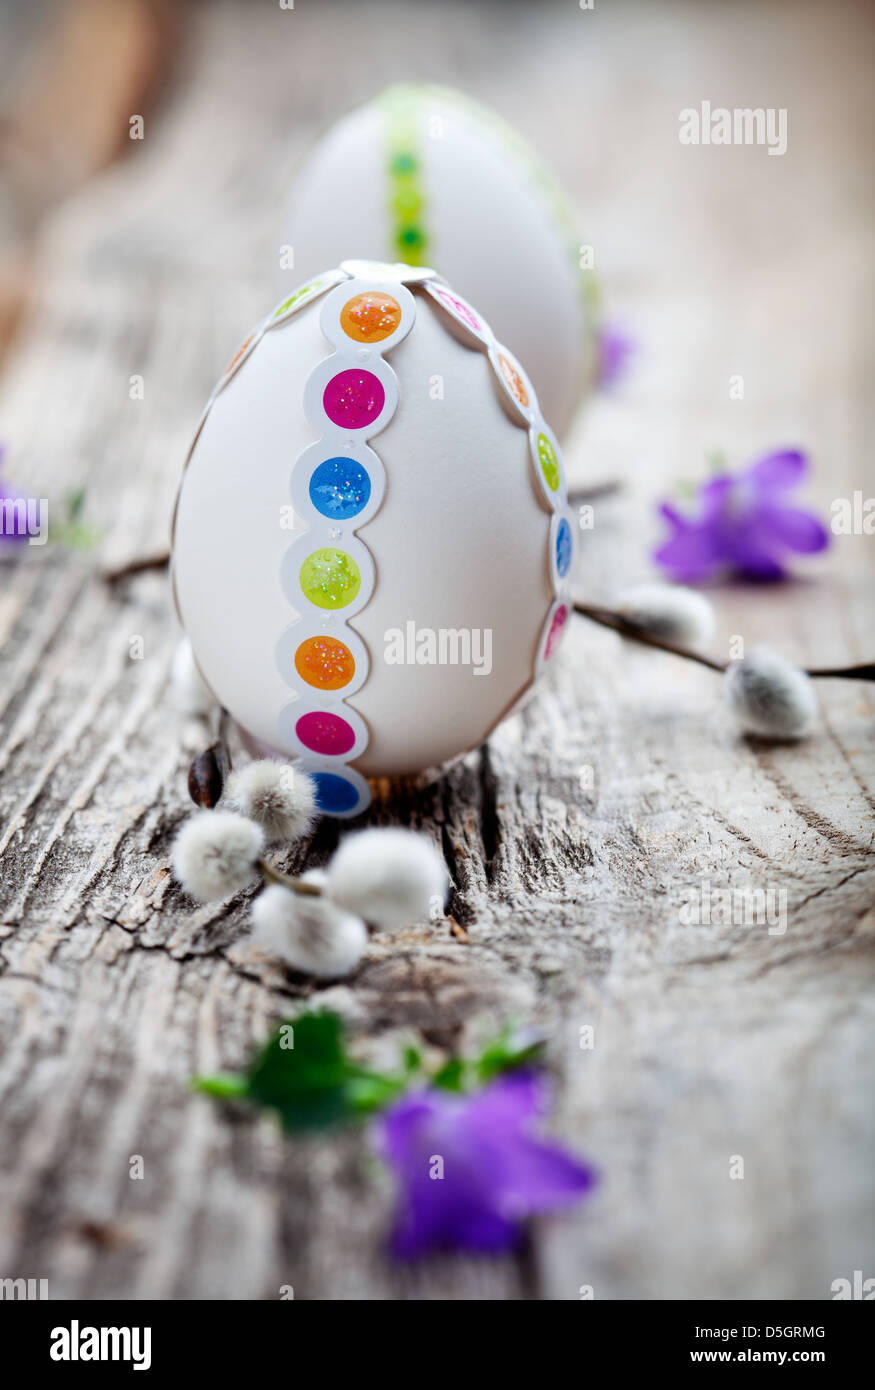 White easter eggs decorated with colorful stickers - Stock Image